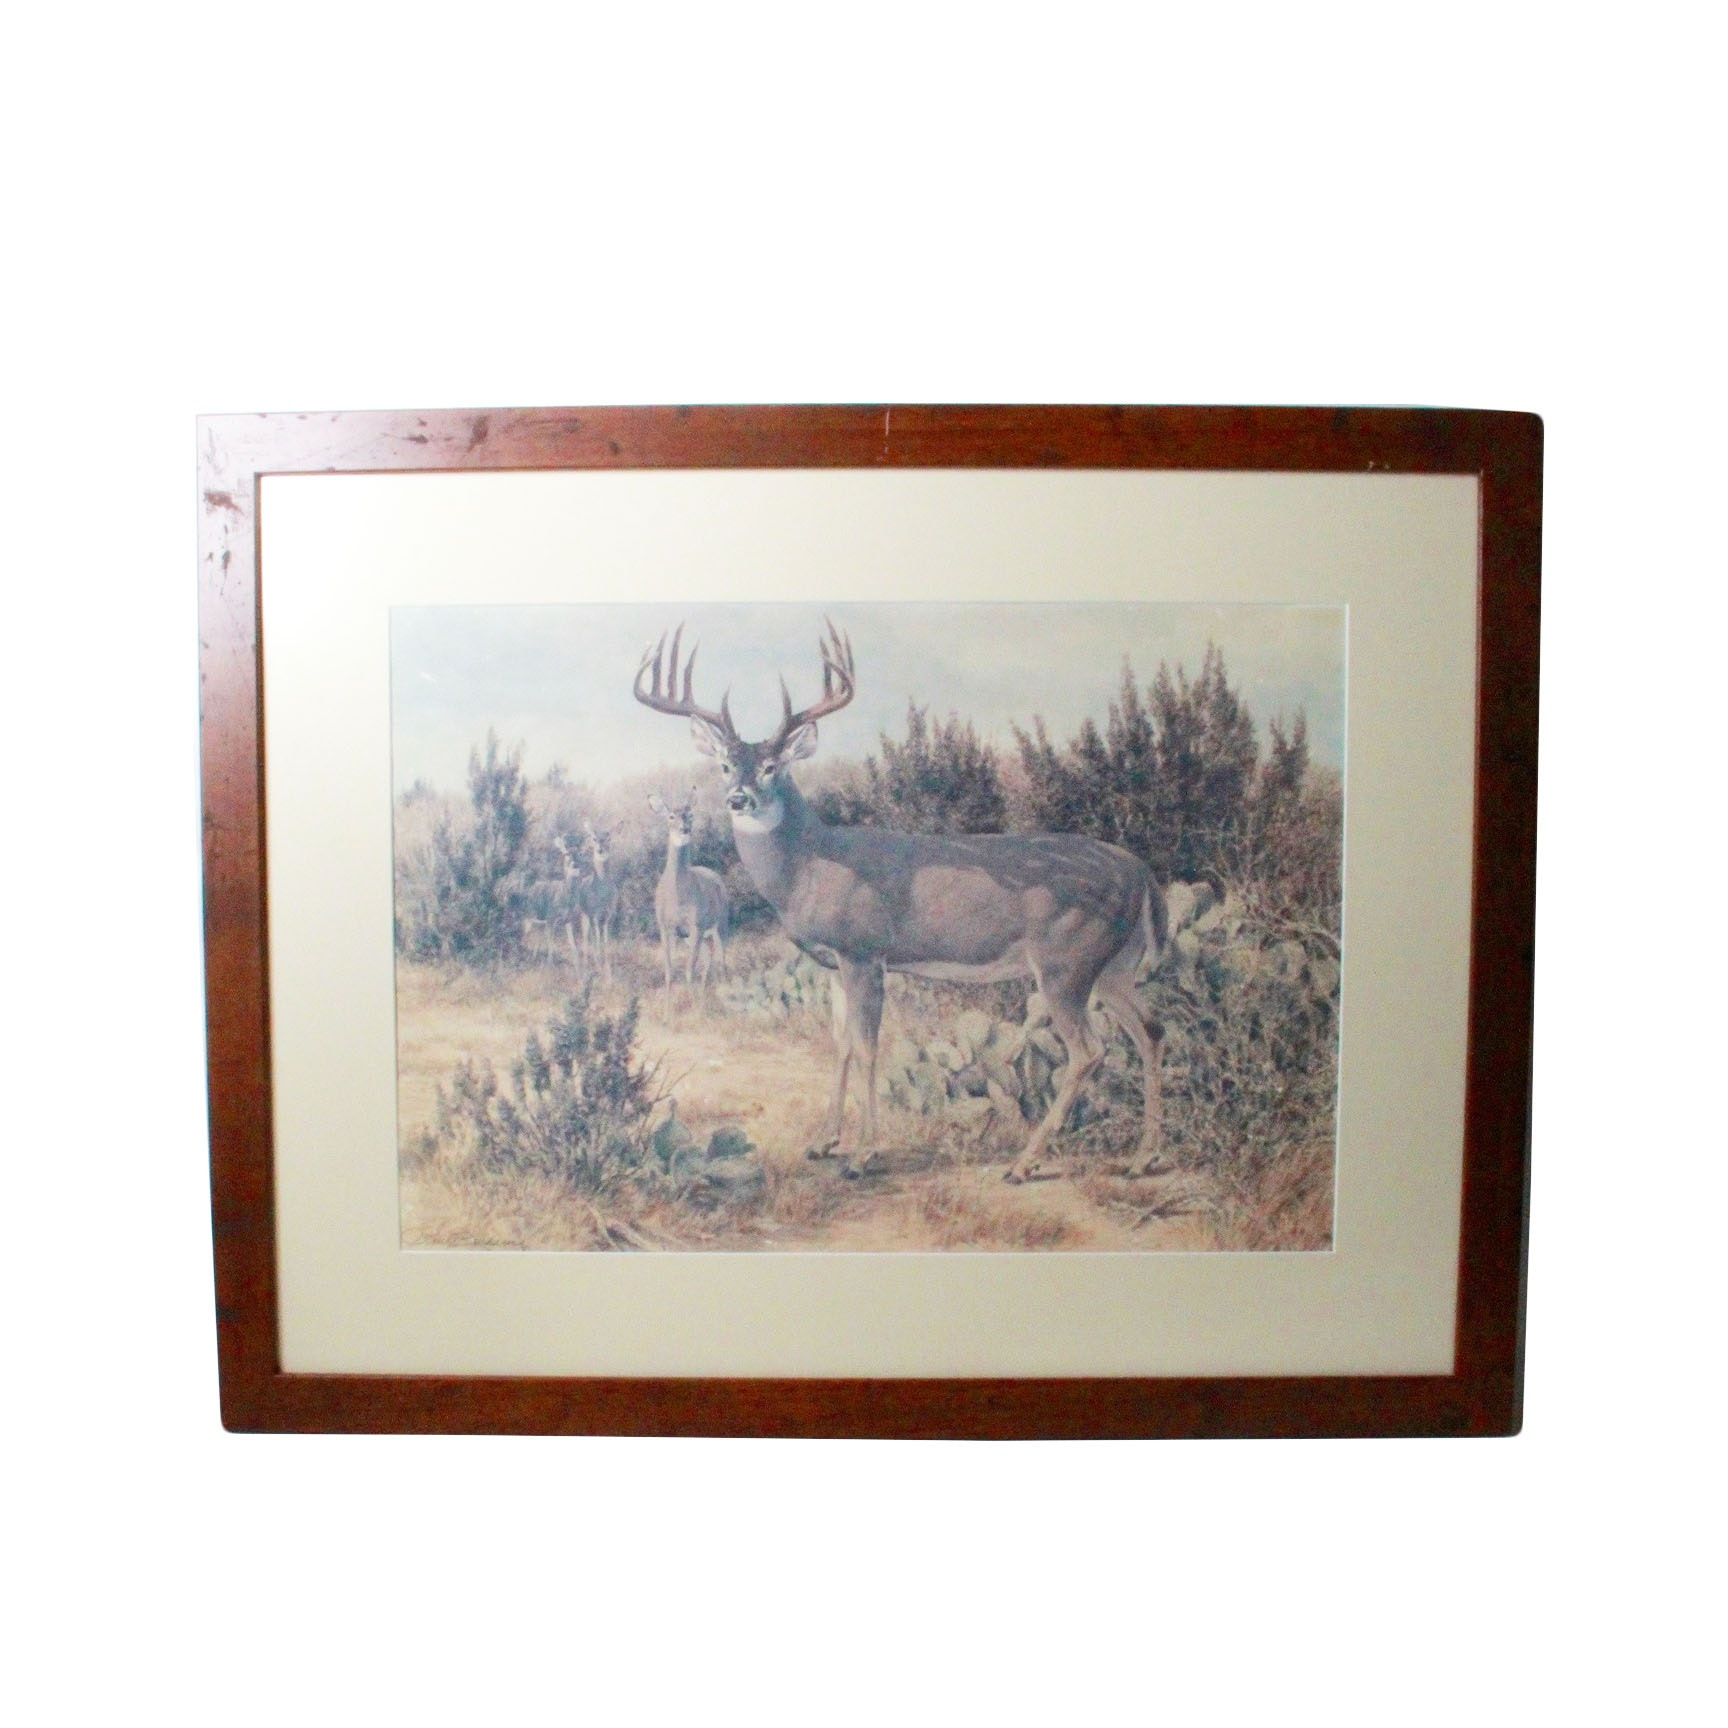 Tom Beecham Quot Mule Deer On Rim Of Grand Canyon Quot Print Ebth